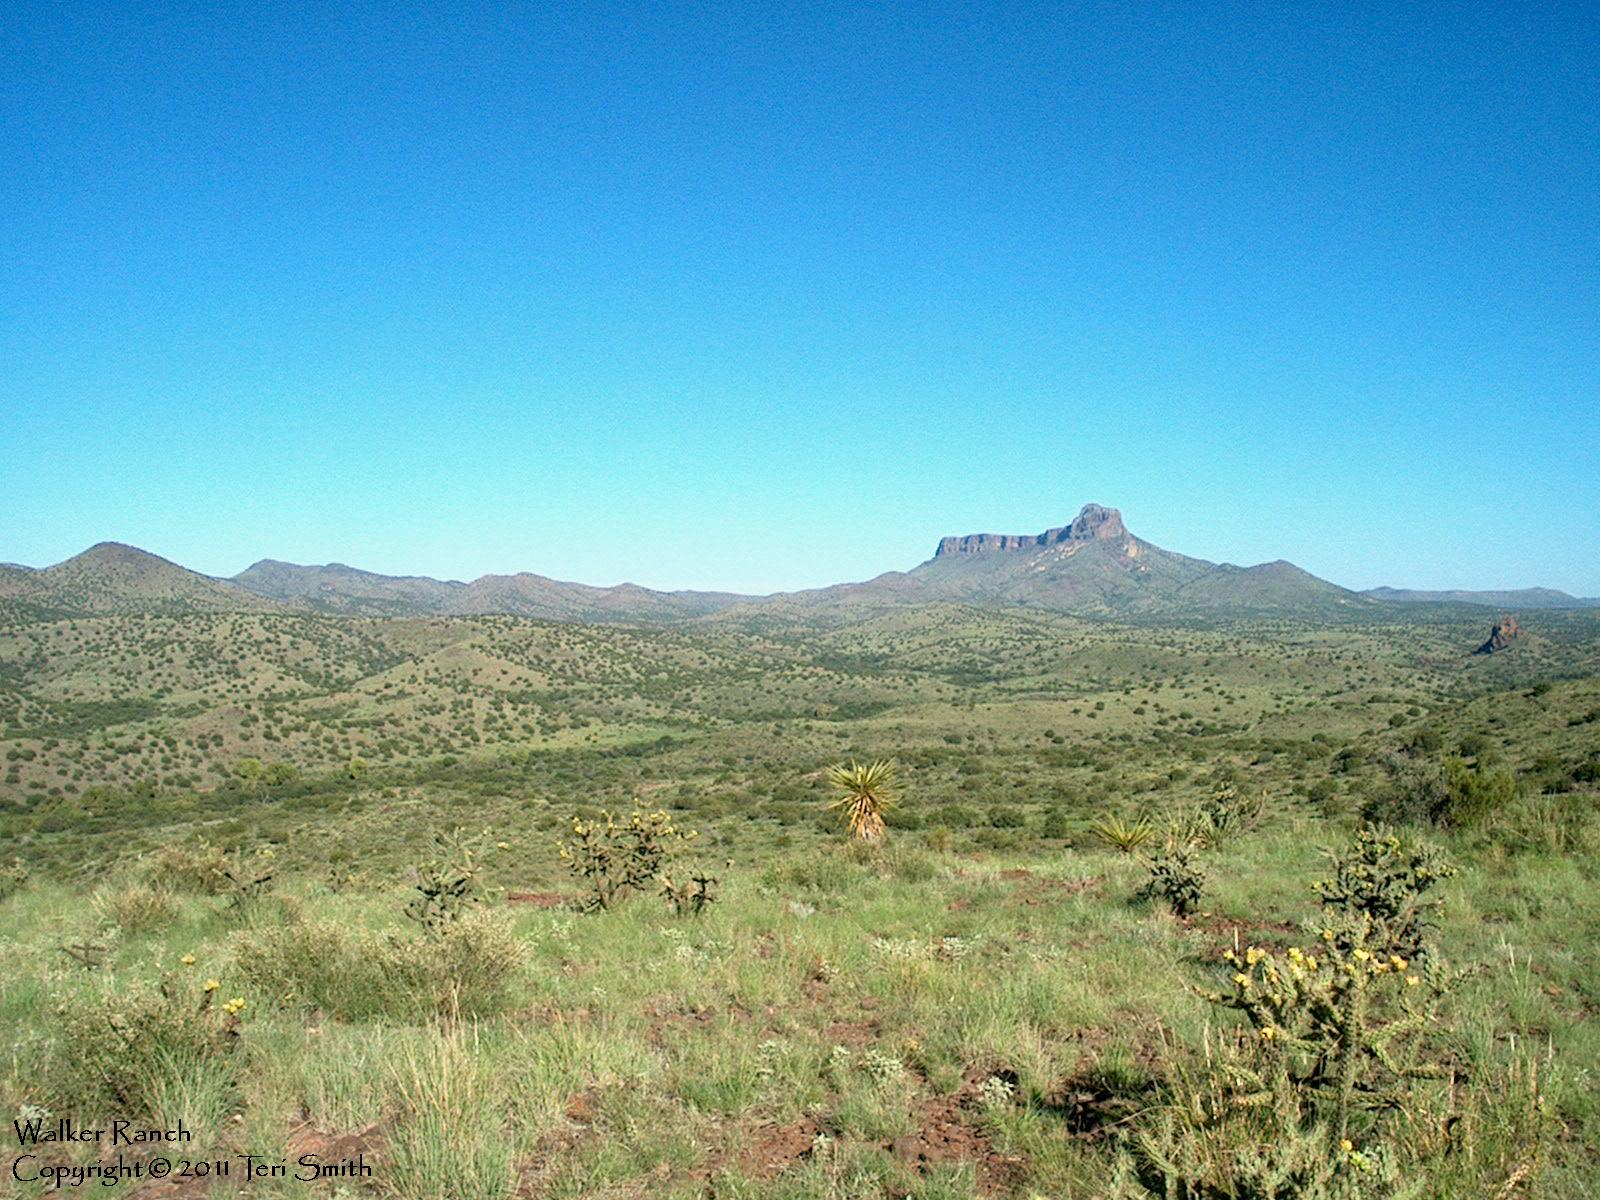 Cathedral Mountain from Walker Ranch